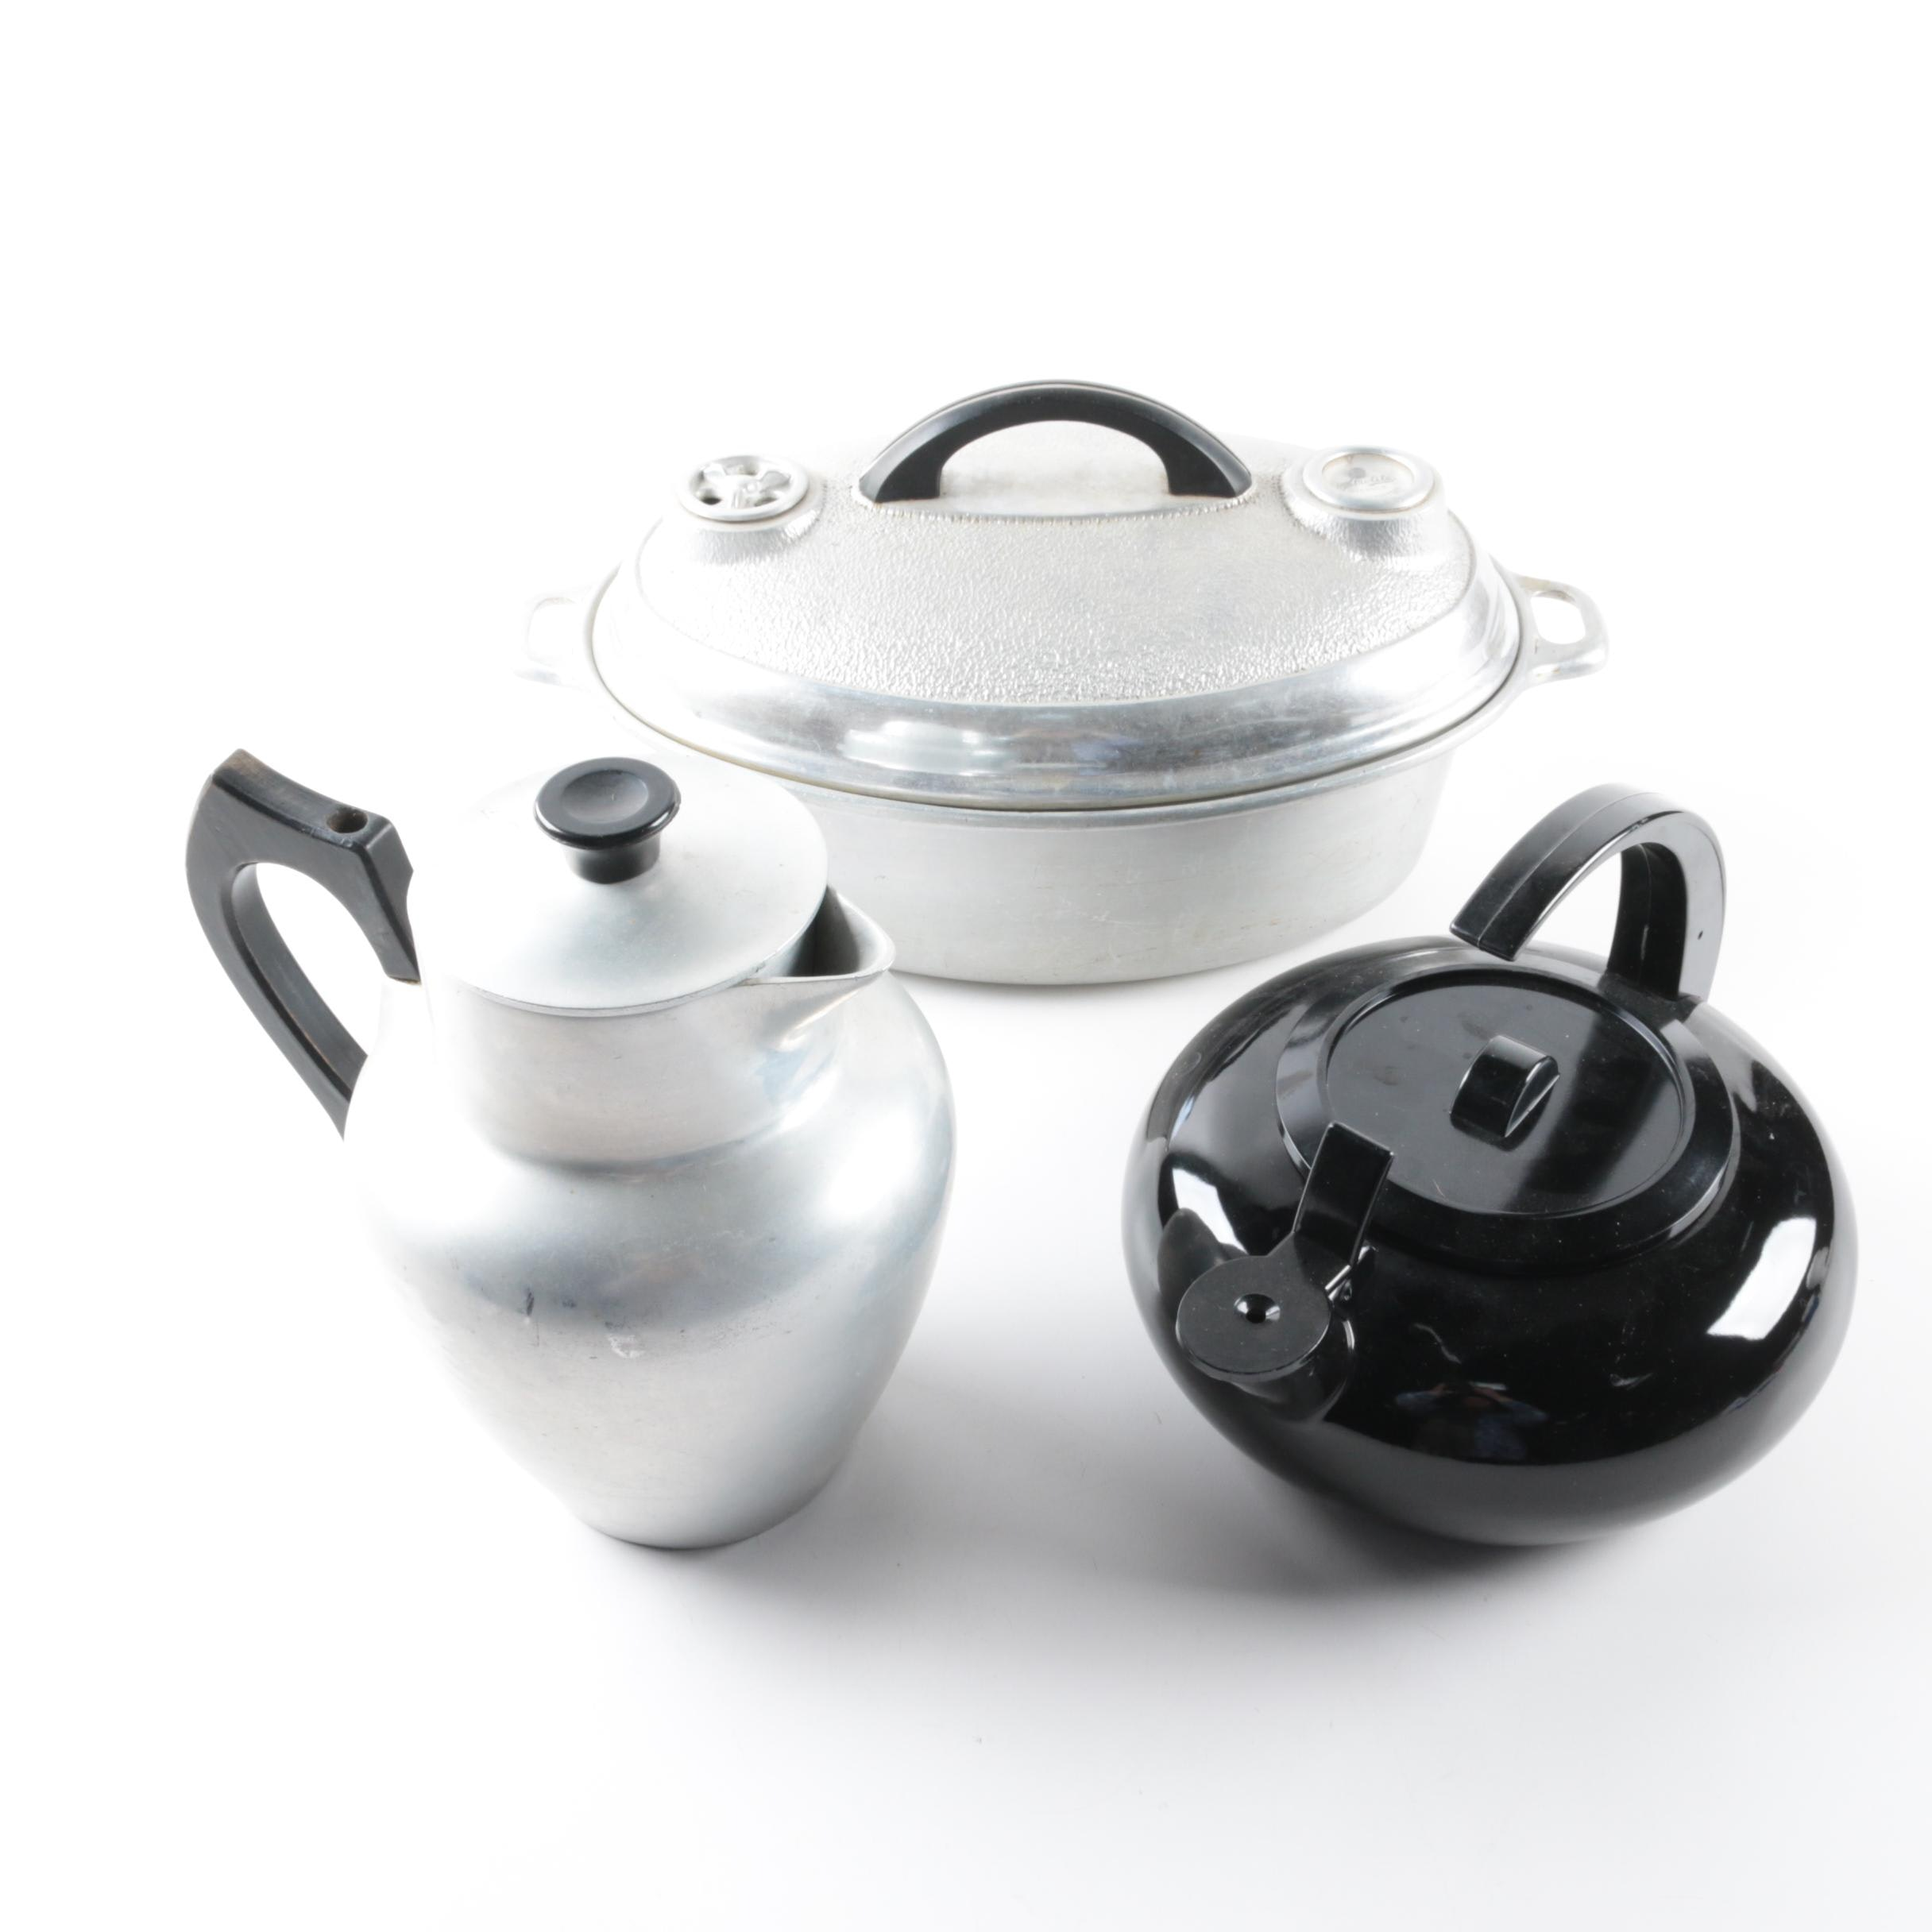 Metrolite Ware Covered Metal Pan and Metal Teapots